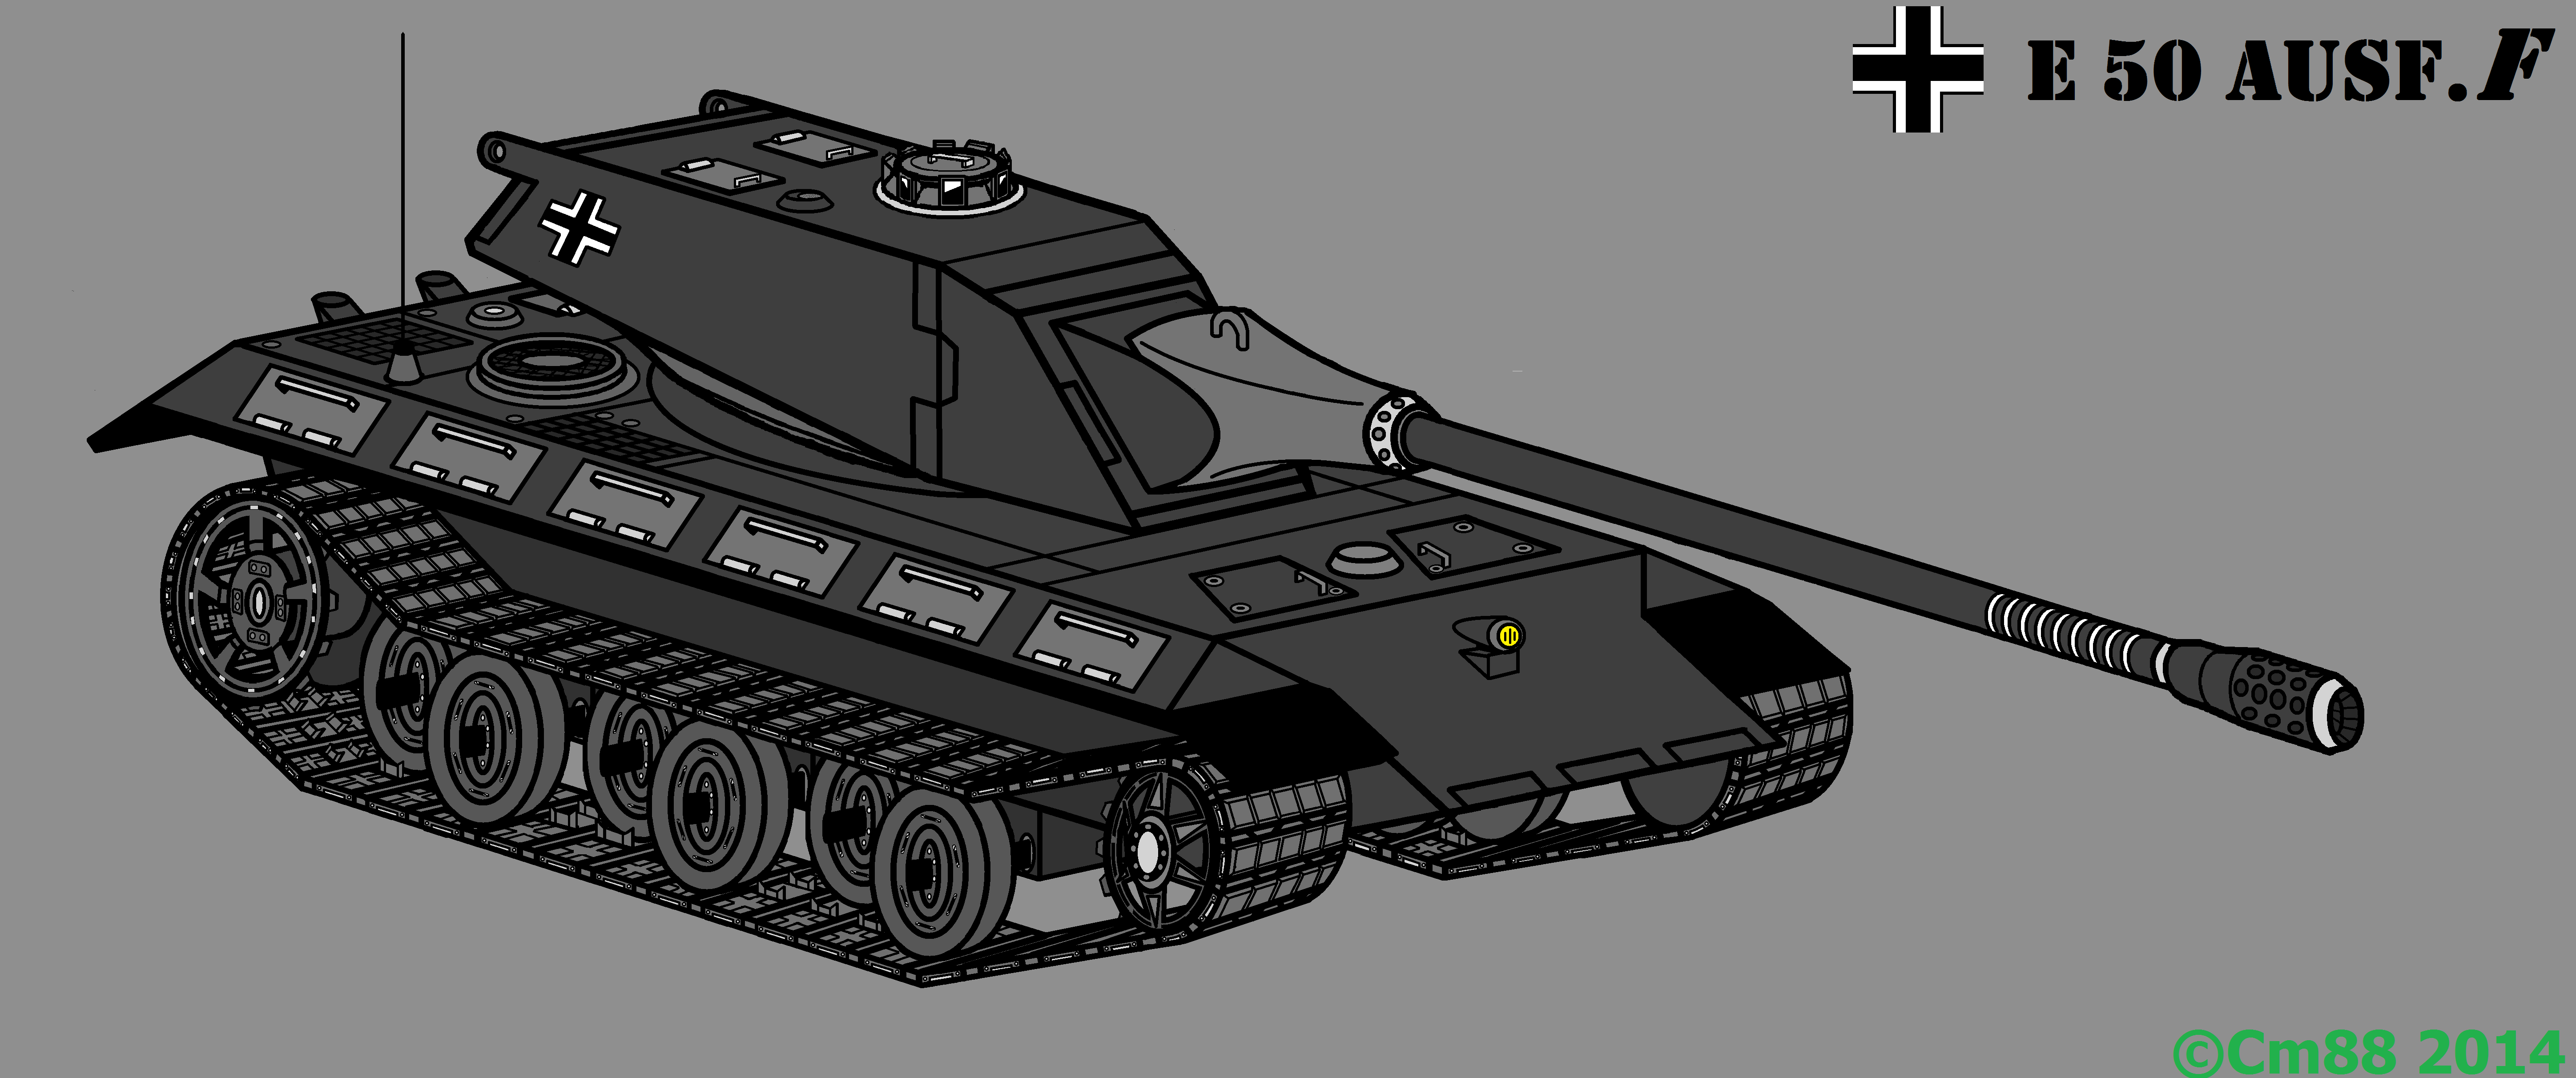 E 50 Ausf F Concept tank - Fan Art - World of Tanks official